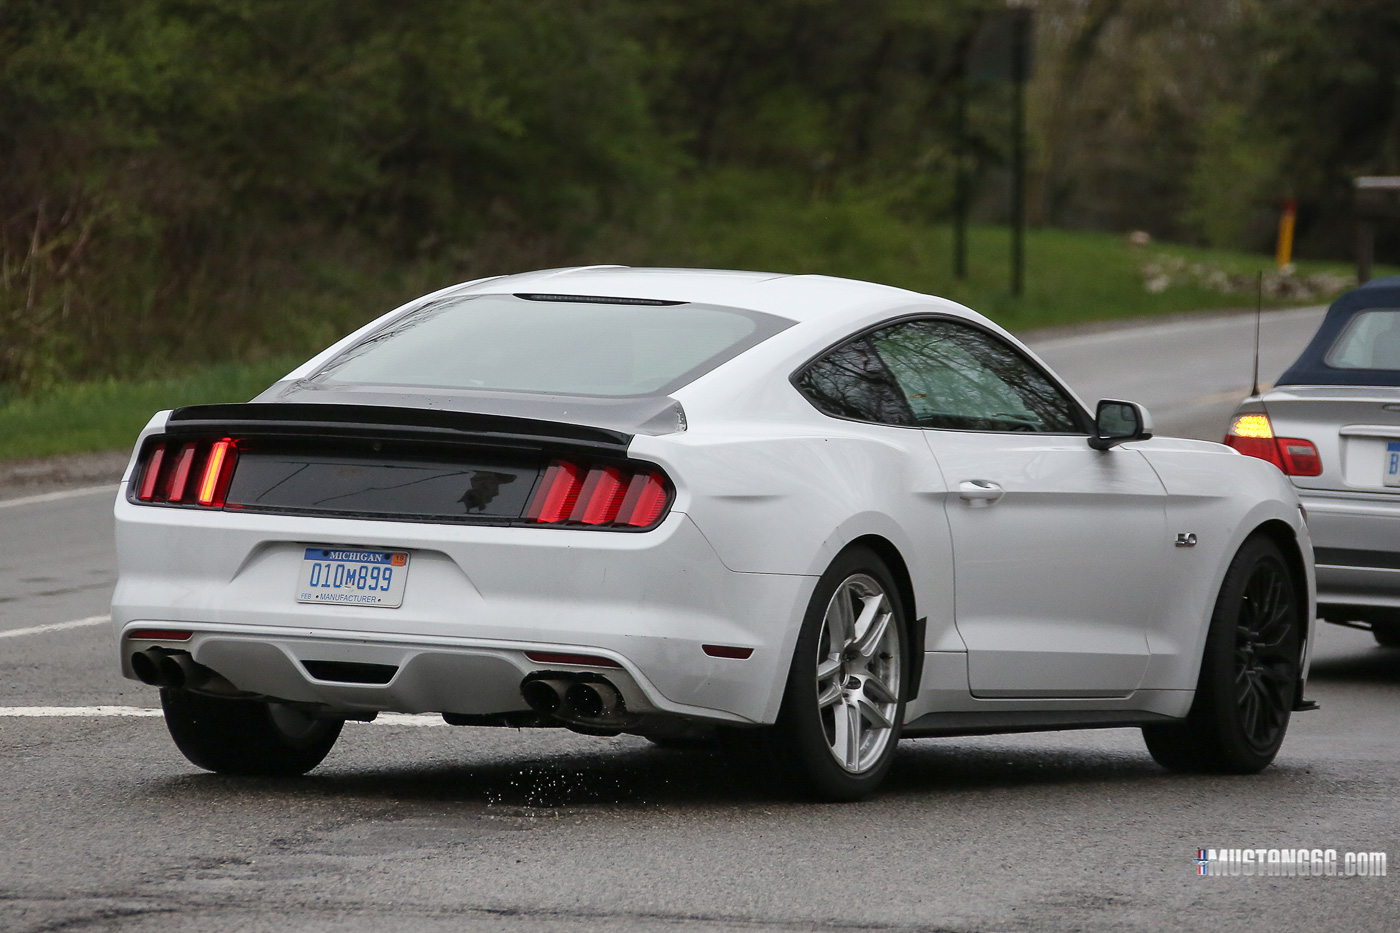 2016 Mustang V6 Exhaust >> Mach 1 S550 Mustang Mule13 – AmericanMuscle.com Blog